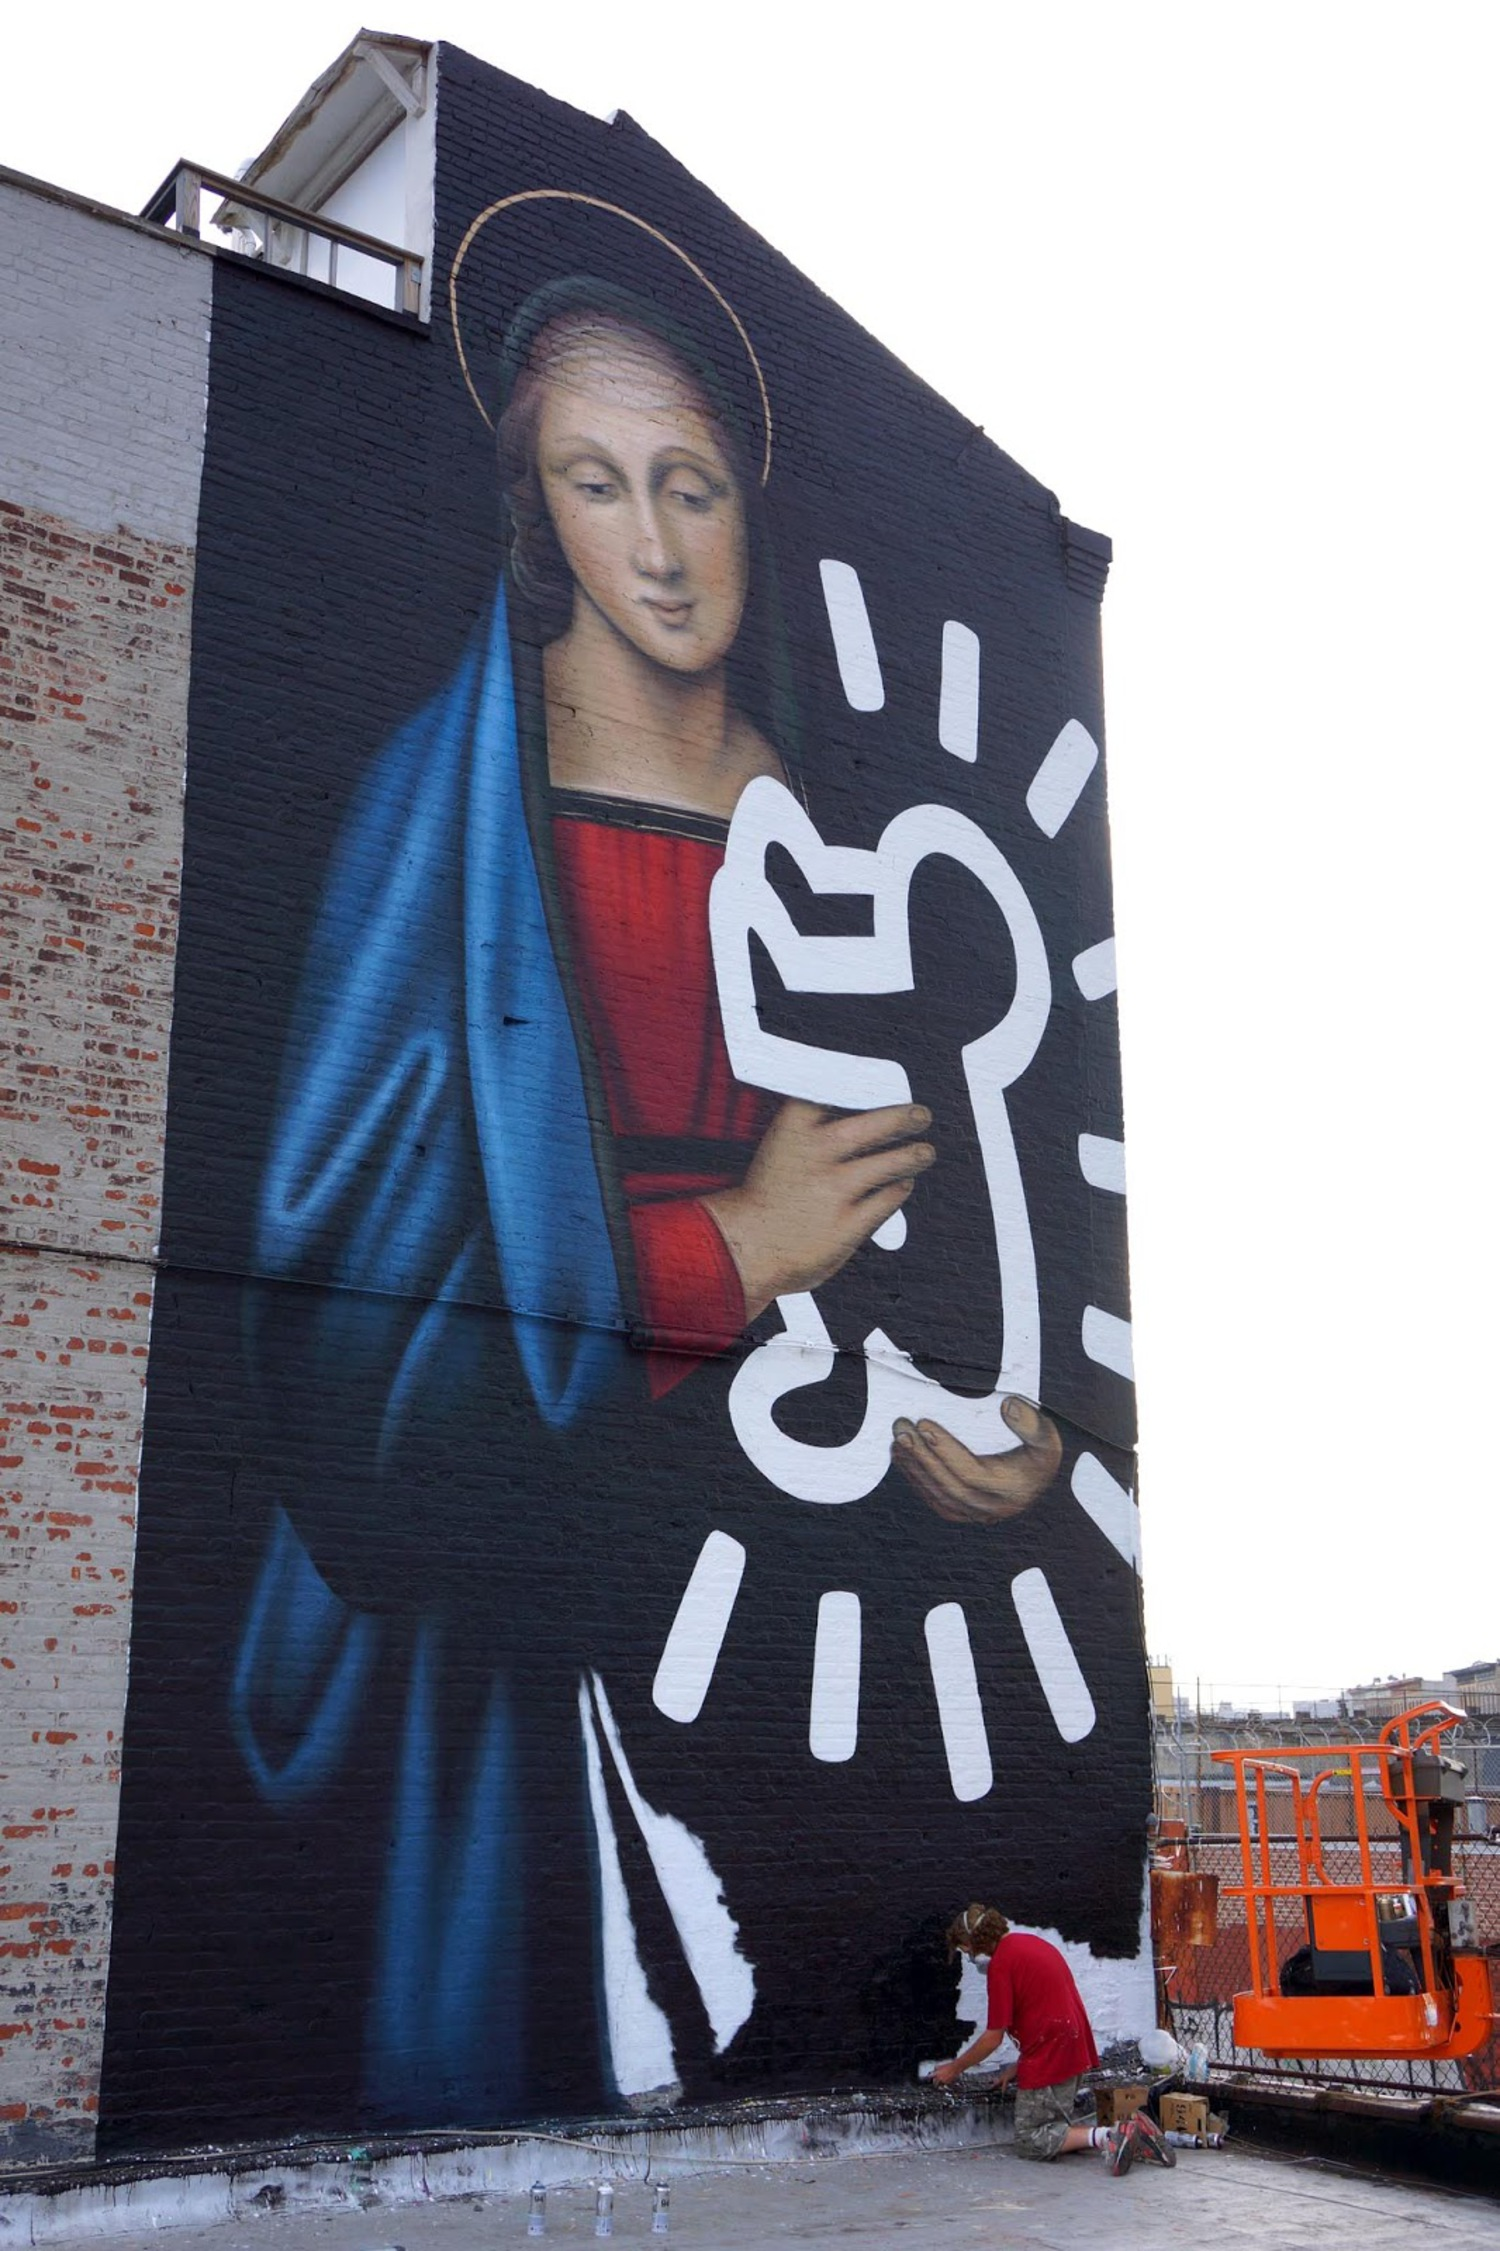 Owen Dippie creates a new mural in Bushwick, New York City